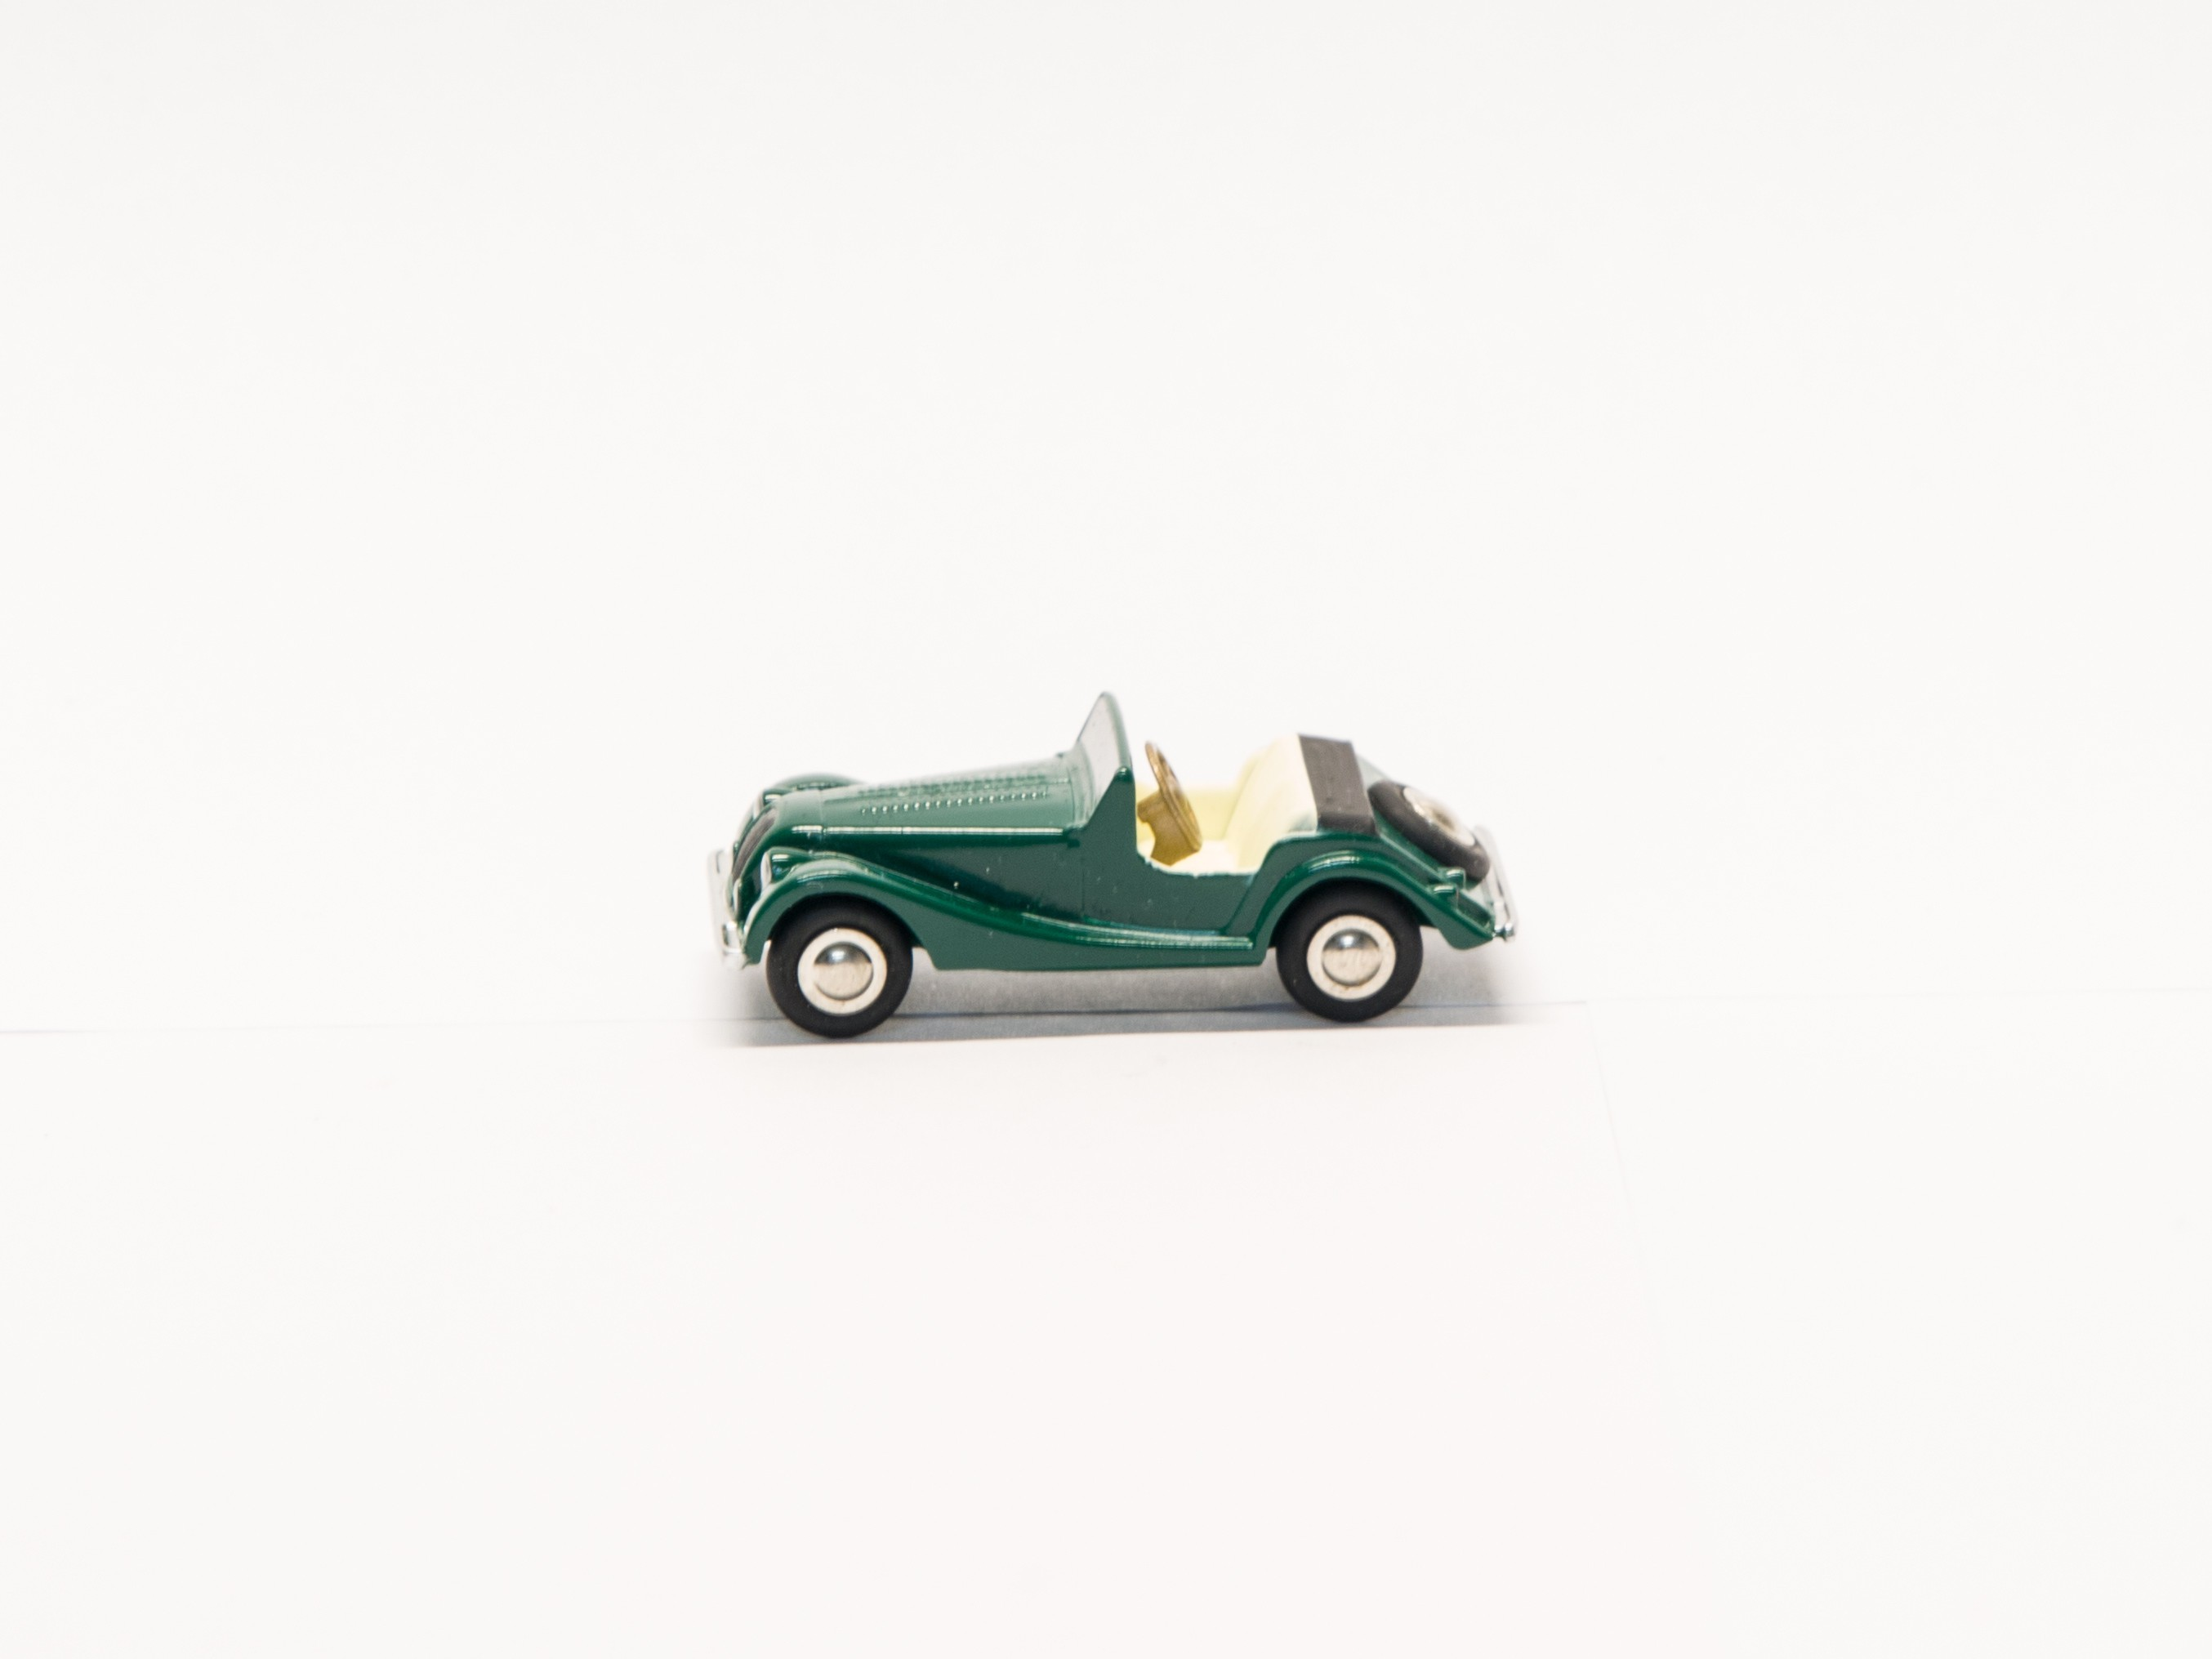 Schuco Piccolo 05785 1:90 Morgan +8 racing green